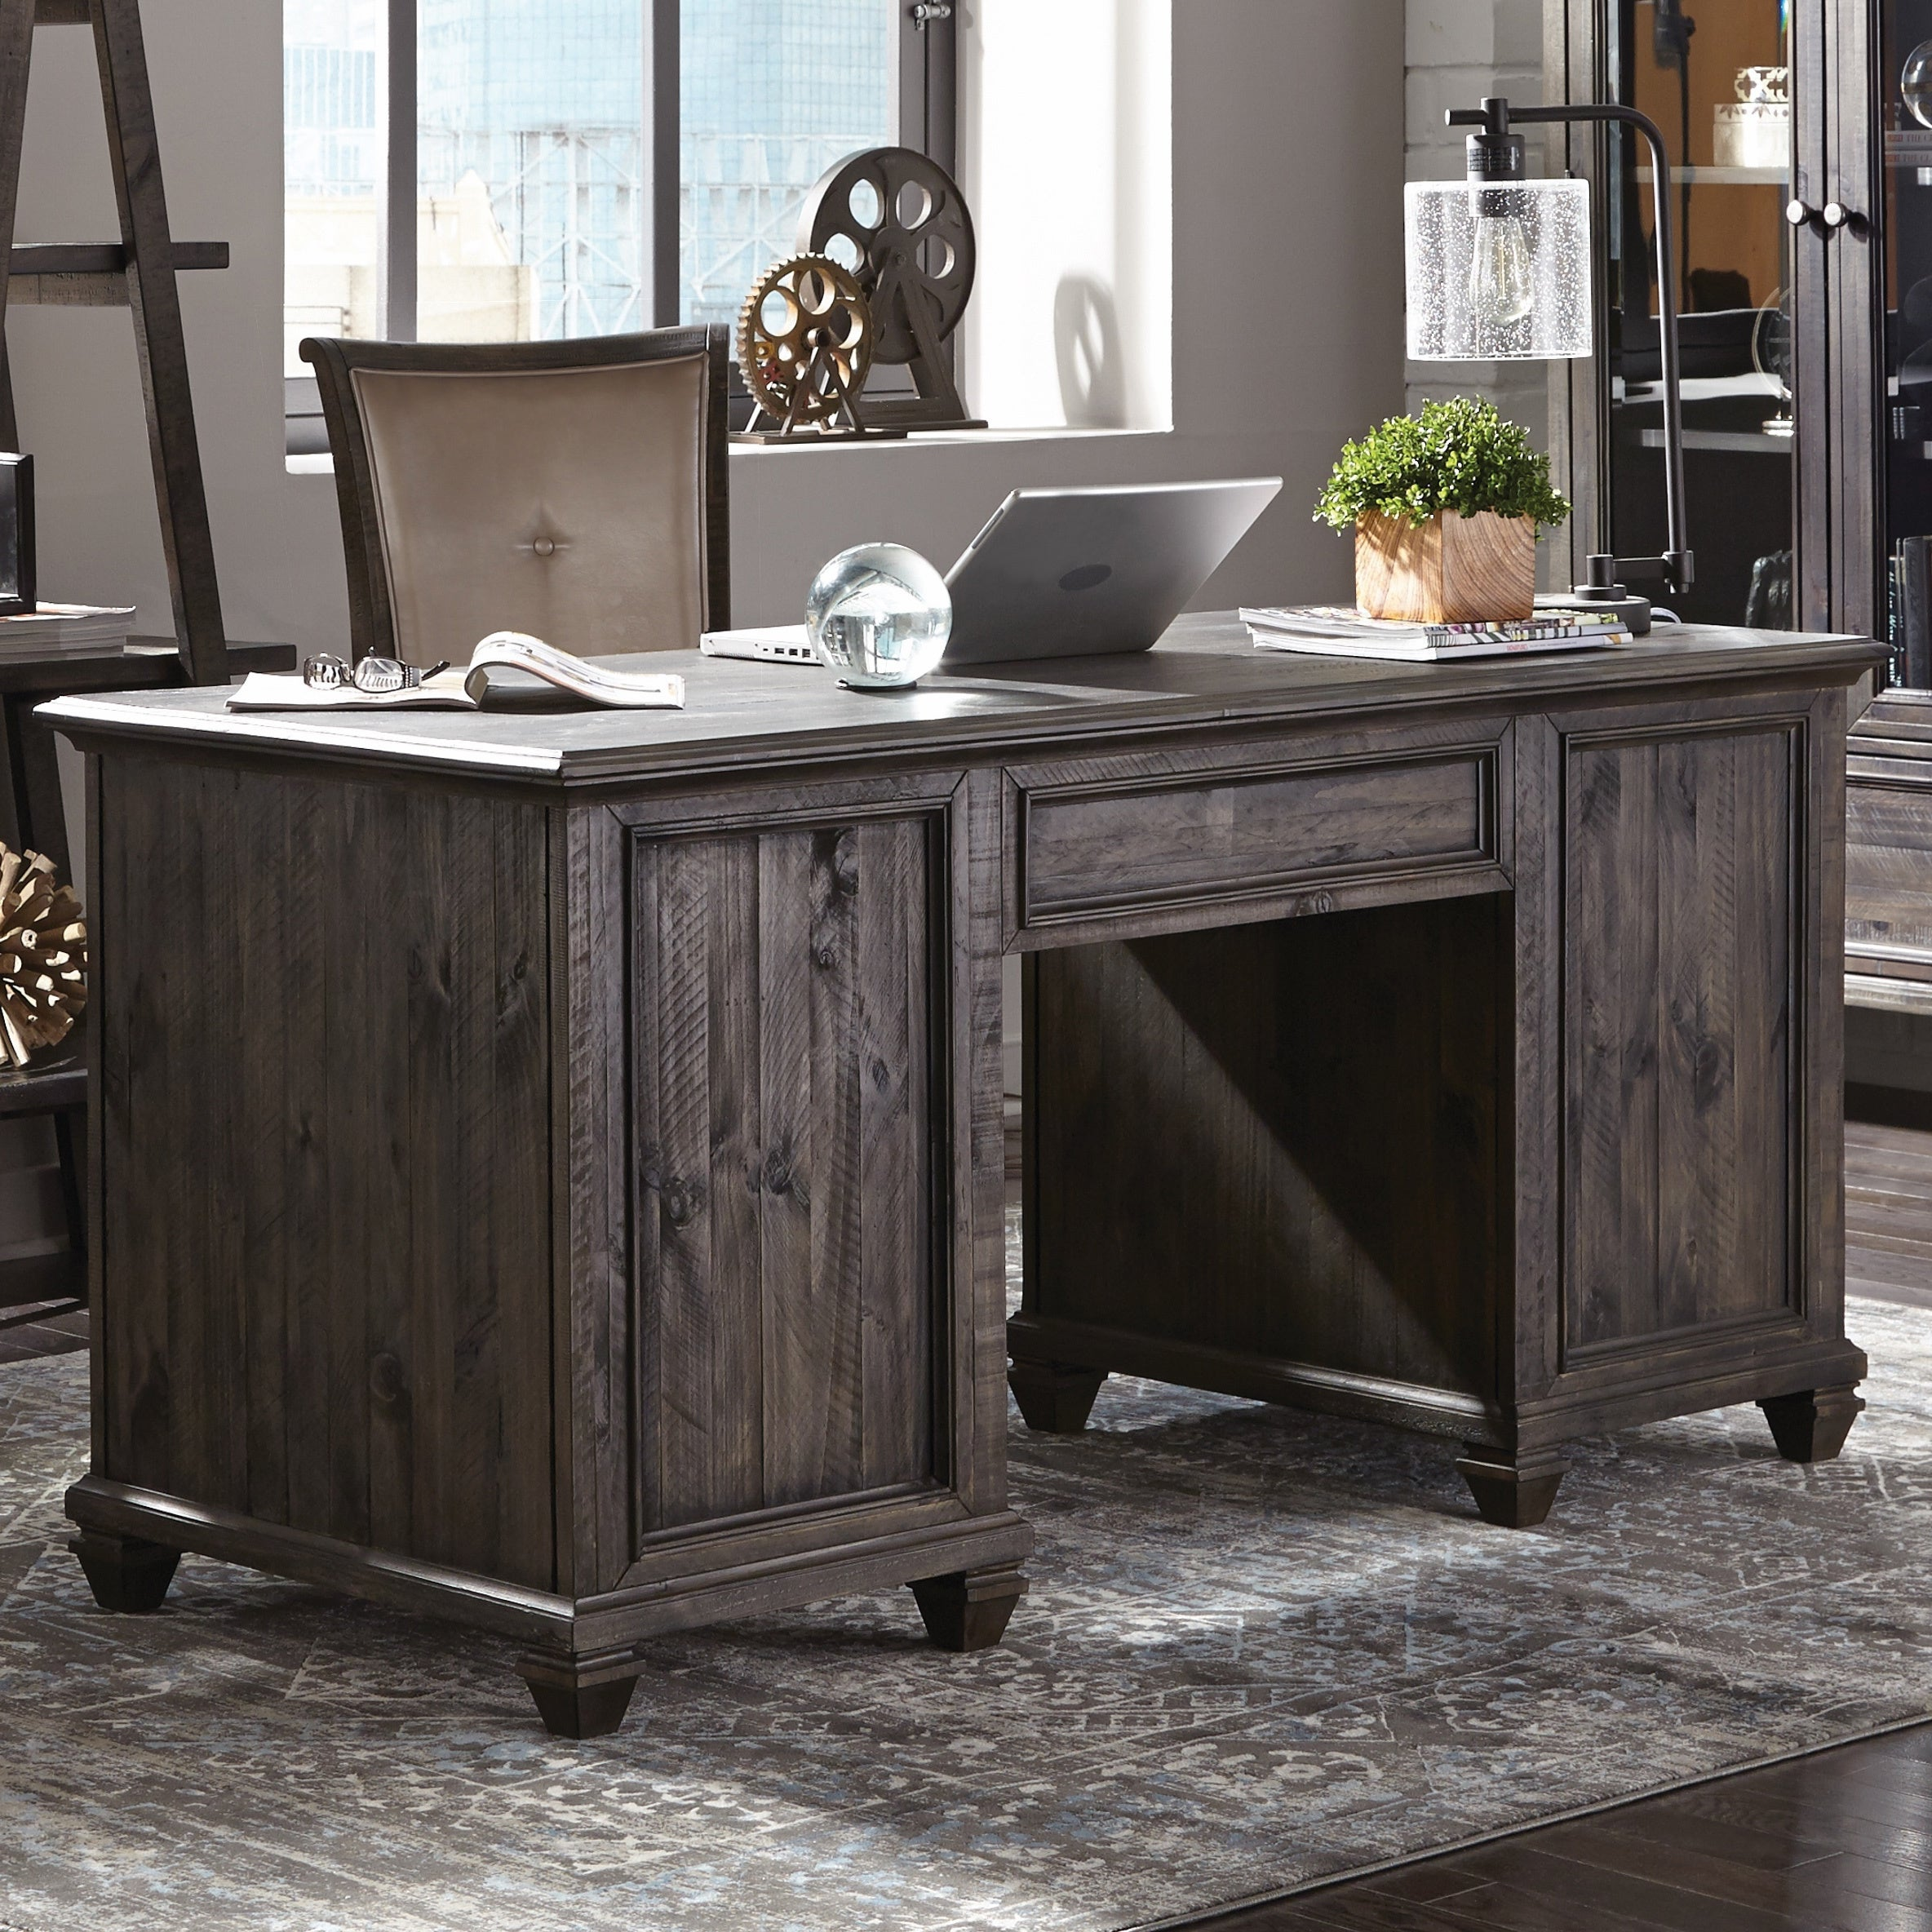 buy desks computer tables online at overstock our best home rh overstock com where to buy desktop computer where to buy desktop